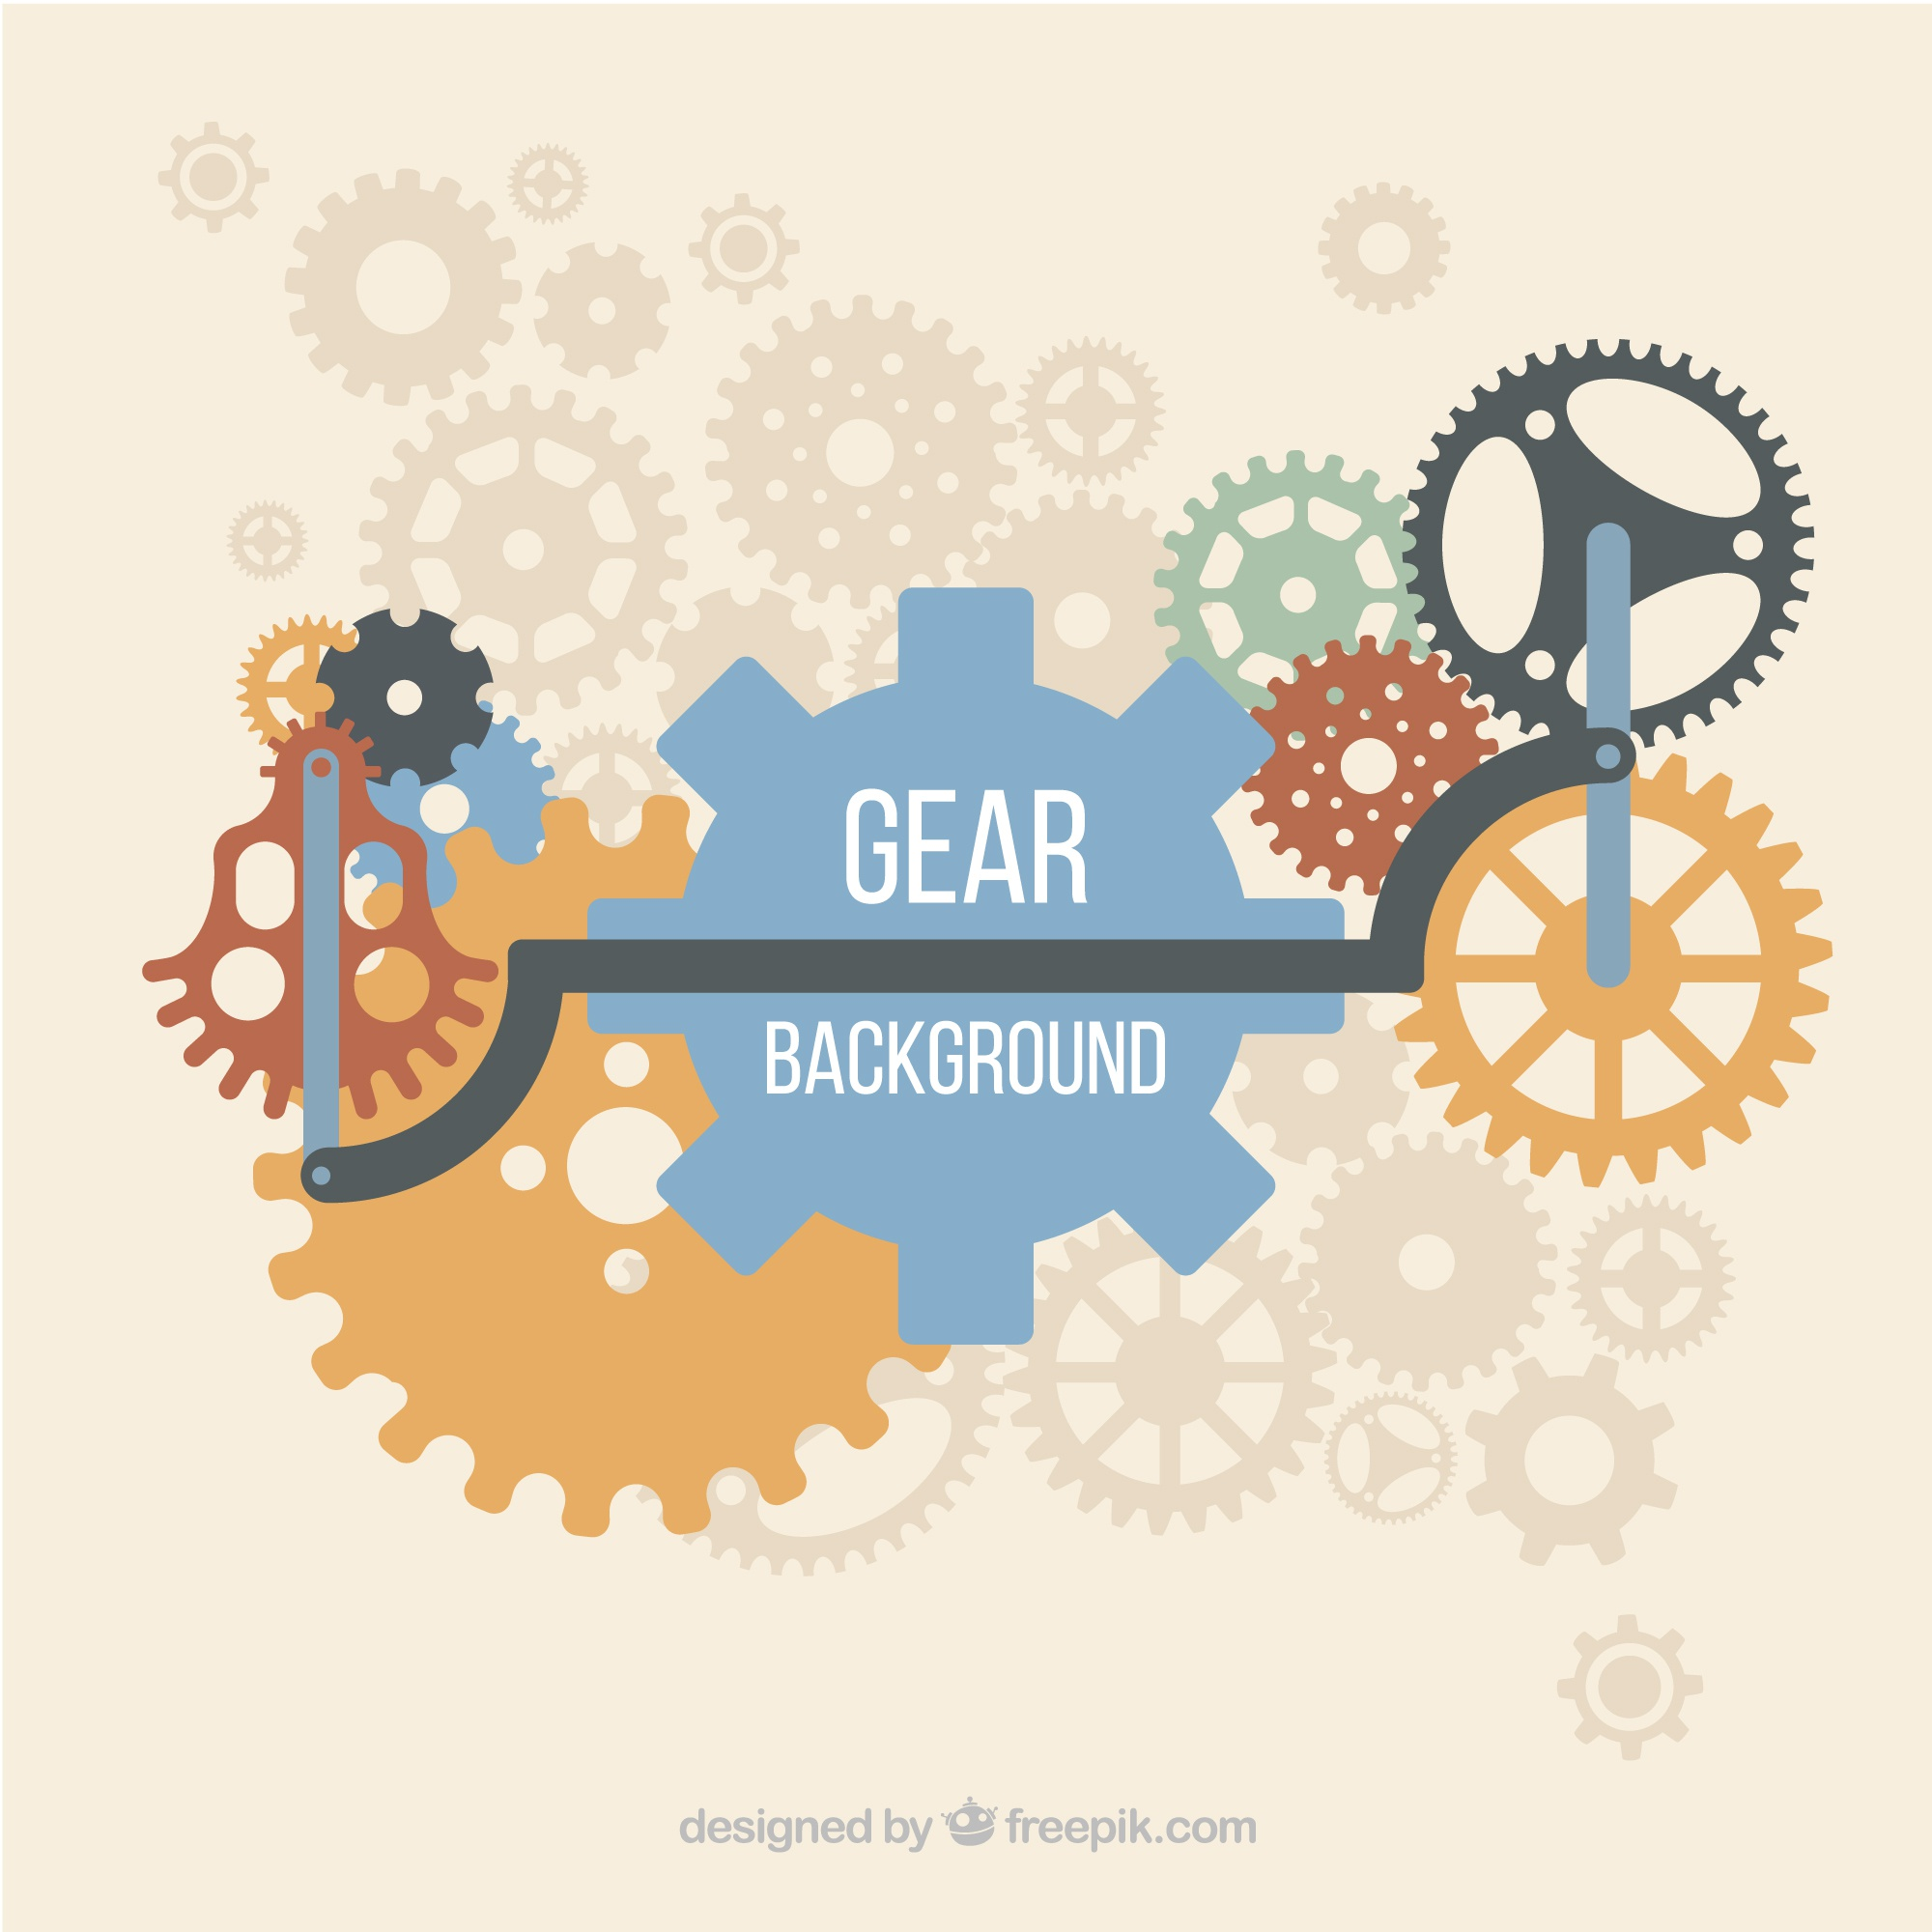 Gear background with pieces in different colors